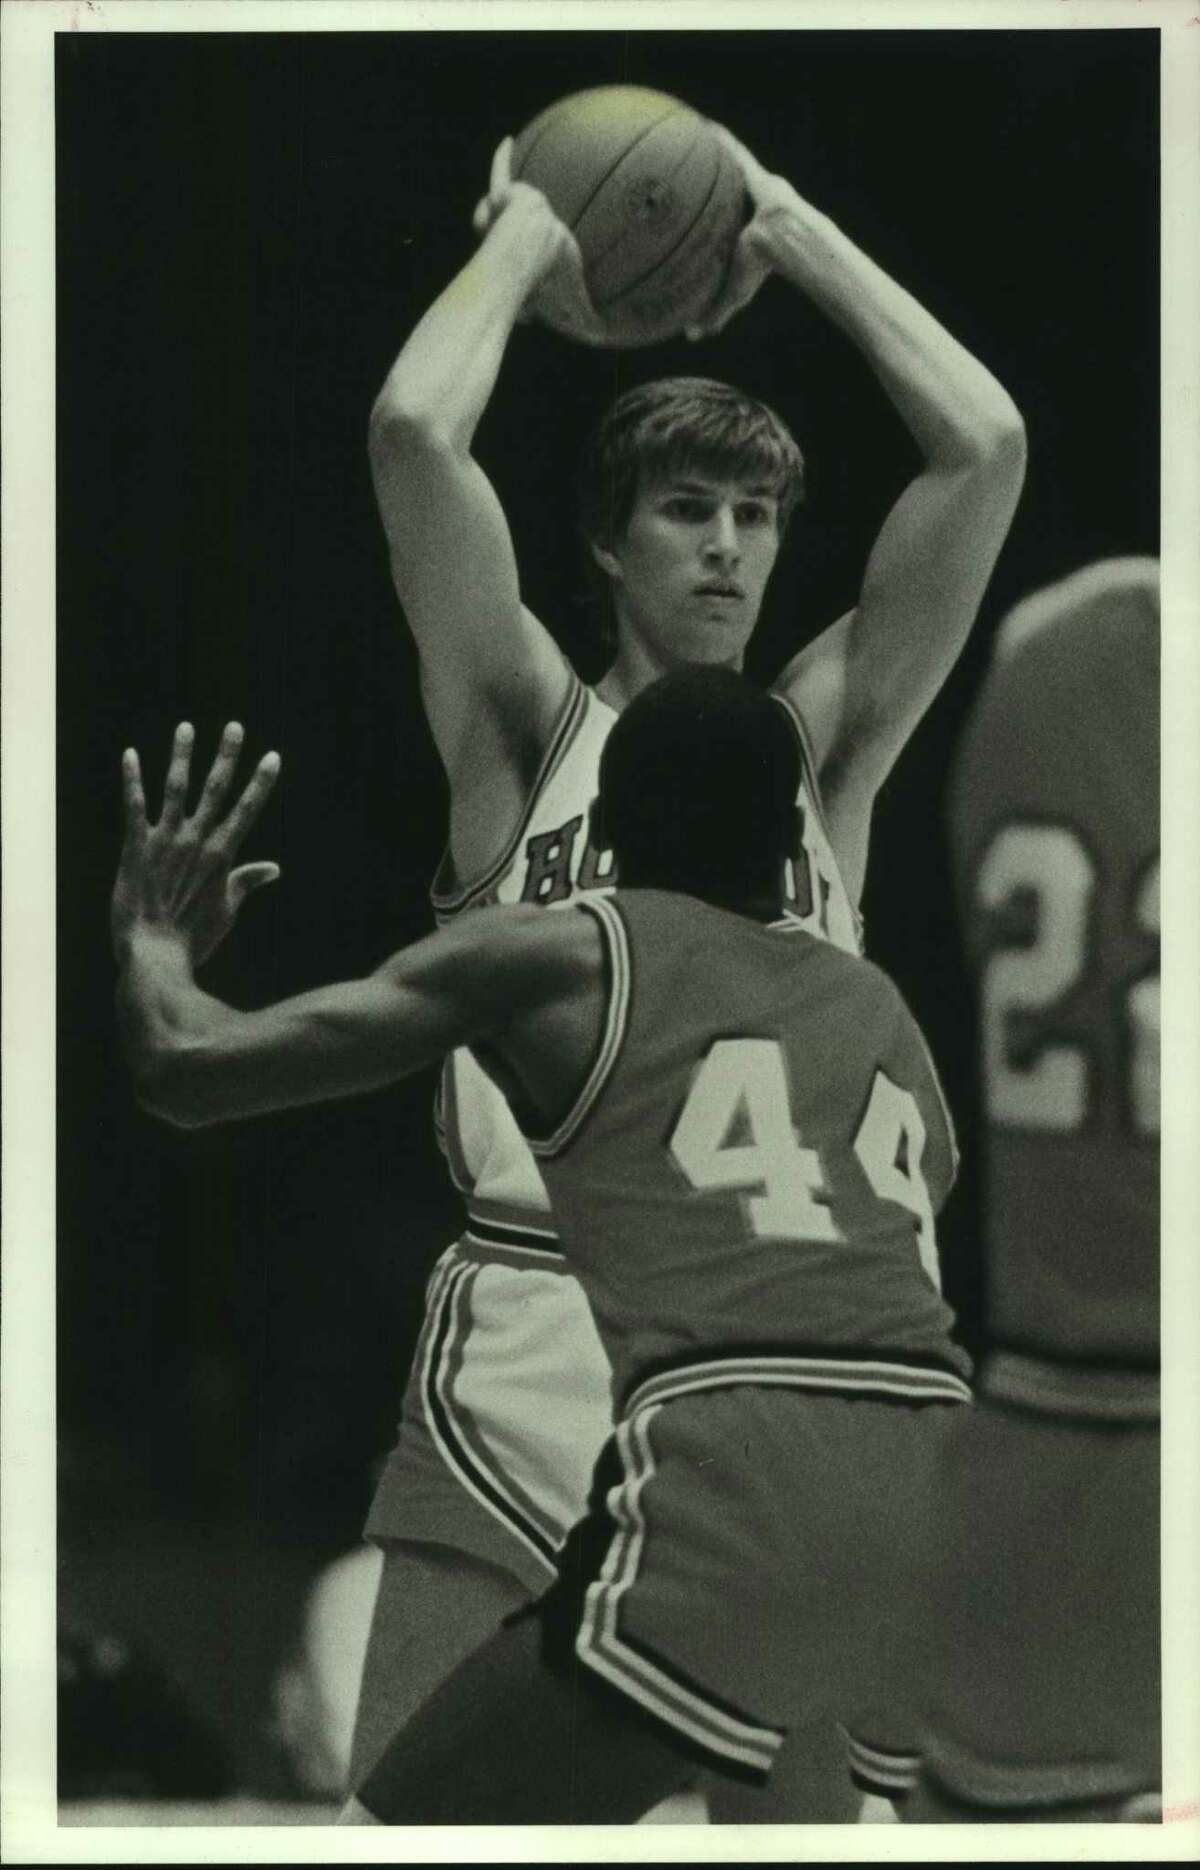 Reid Gettys still holds the University of Houston men's basketball team record for most career assists, most assists in a single season and most assists in a singe game